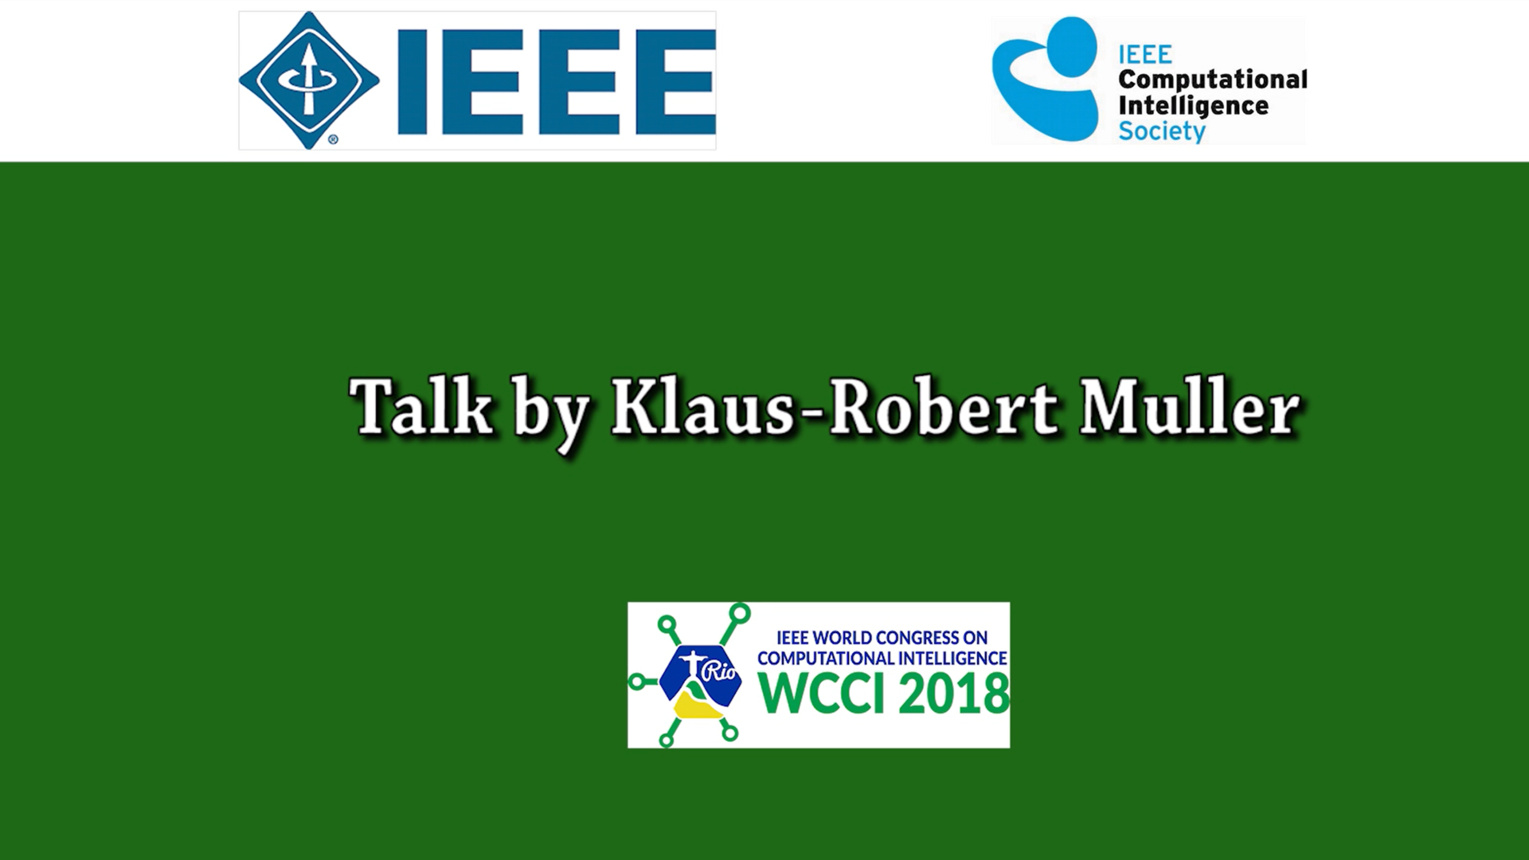 Klaus-Robert Muller: Machine learning & AI for the Sciences — Towards Understanding